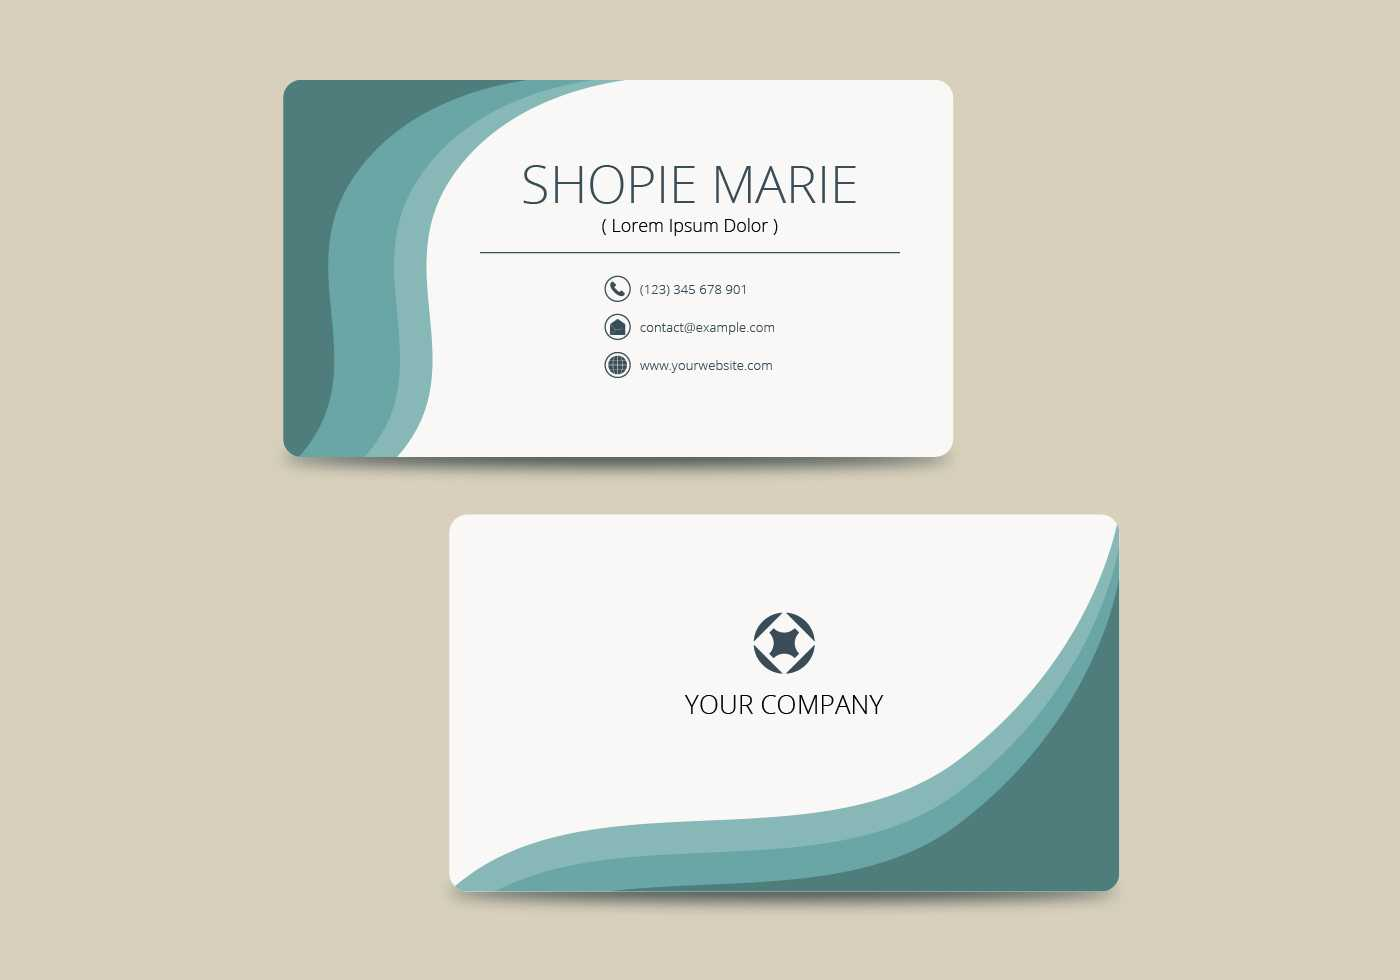 Business Card Template Free Vector Art - (76,525 Free Downloads) Pertaining To Template For Calling Card